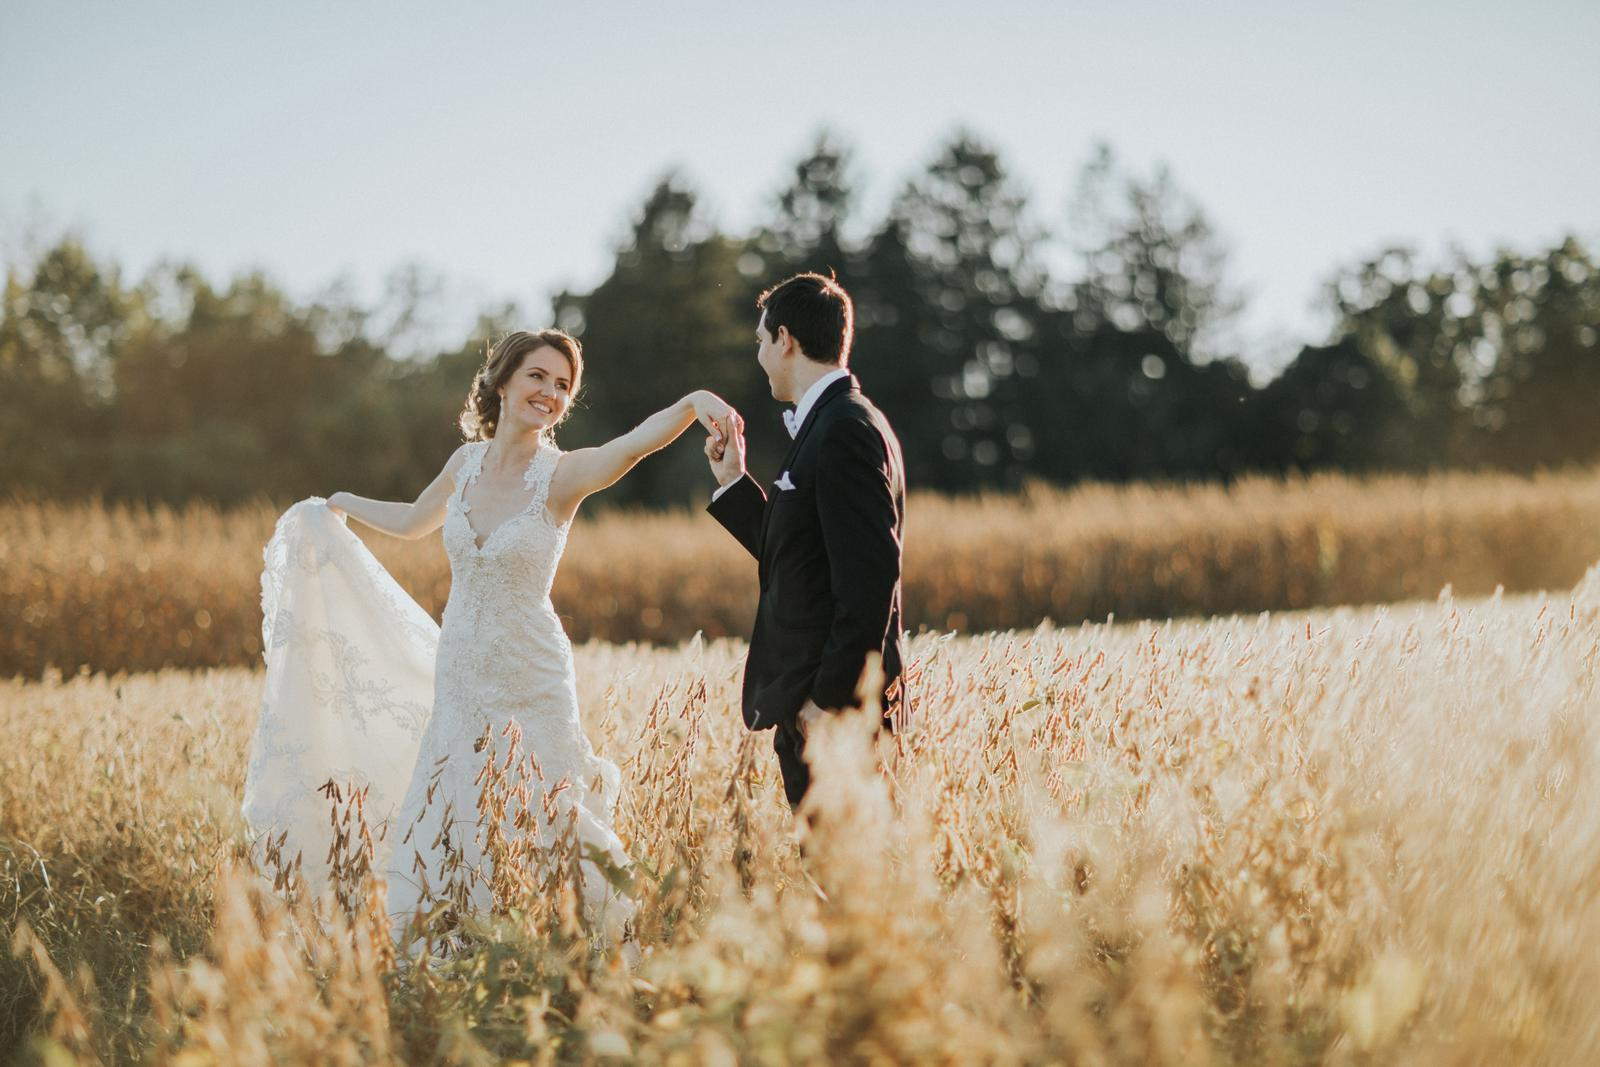 Bride and Groom in Farm Field.